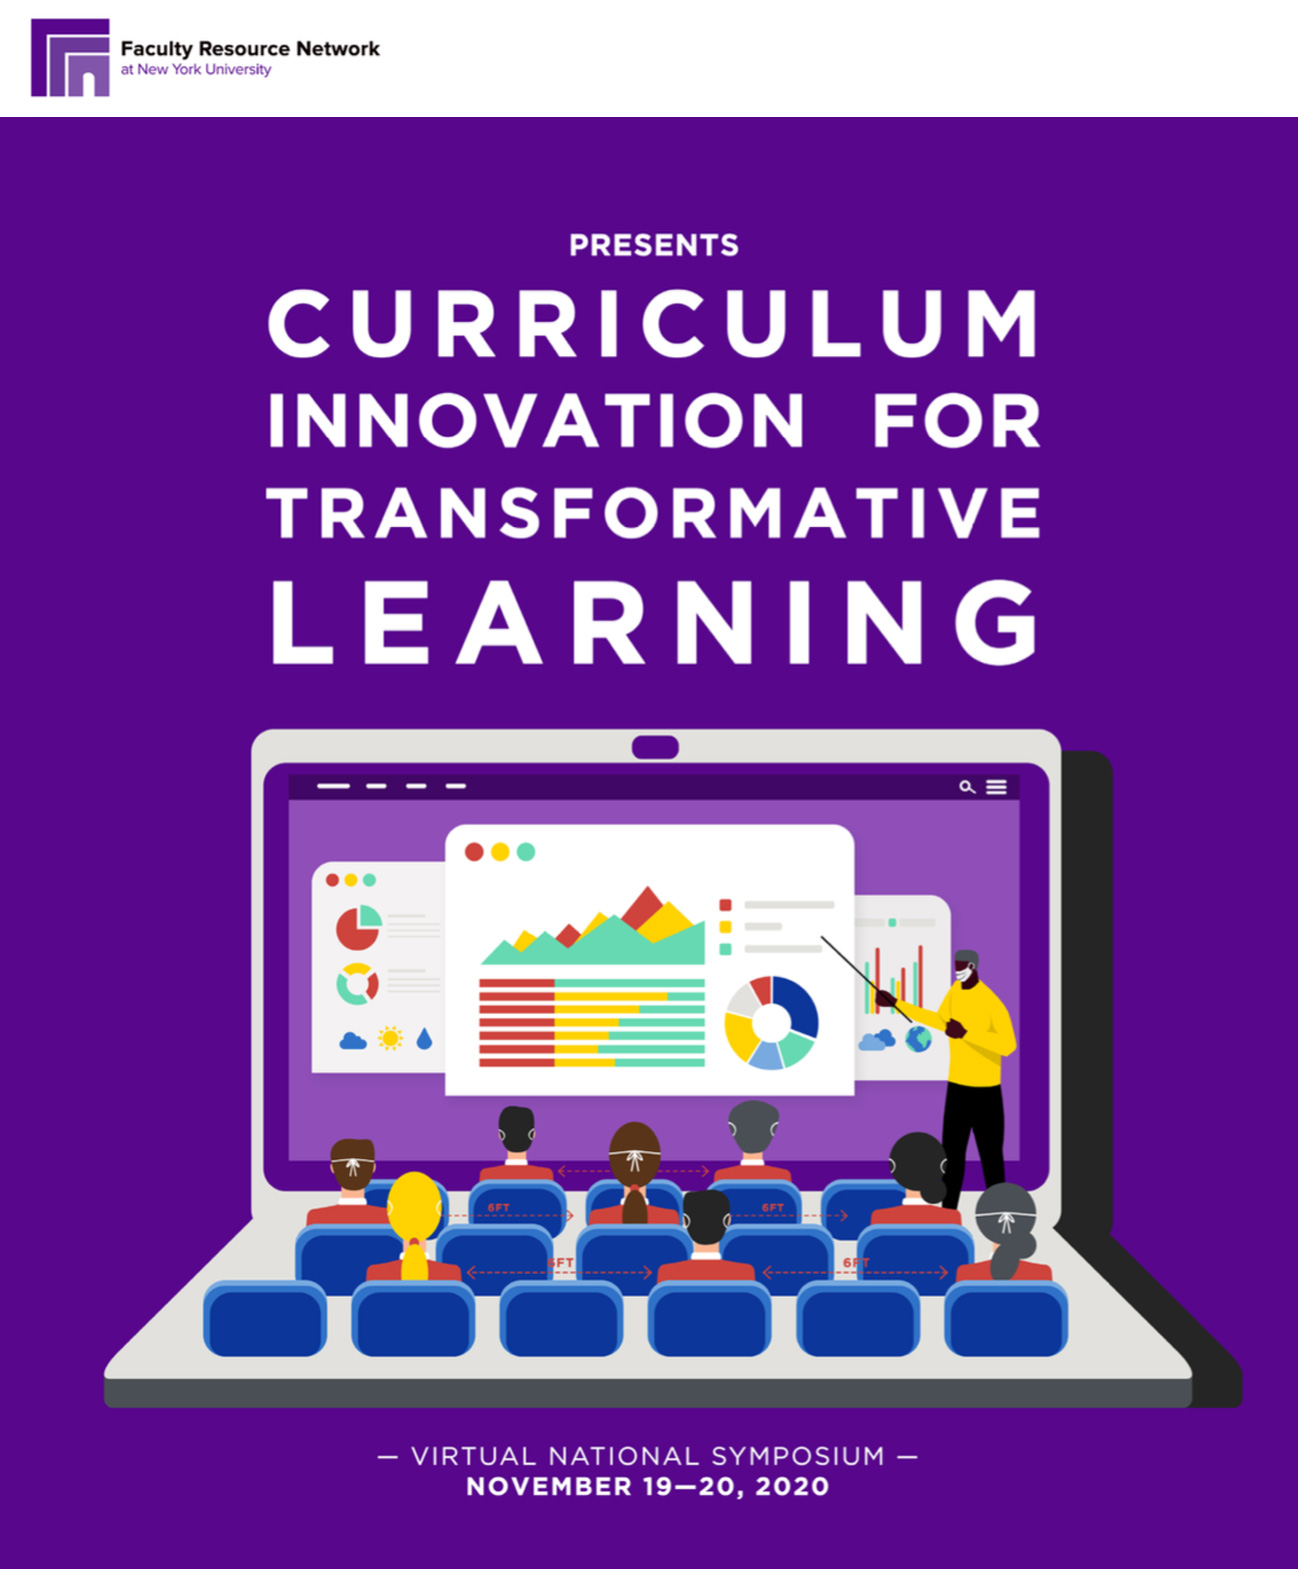 Curriculum innovation for transformative learning